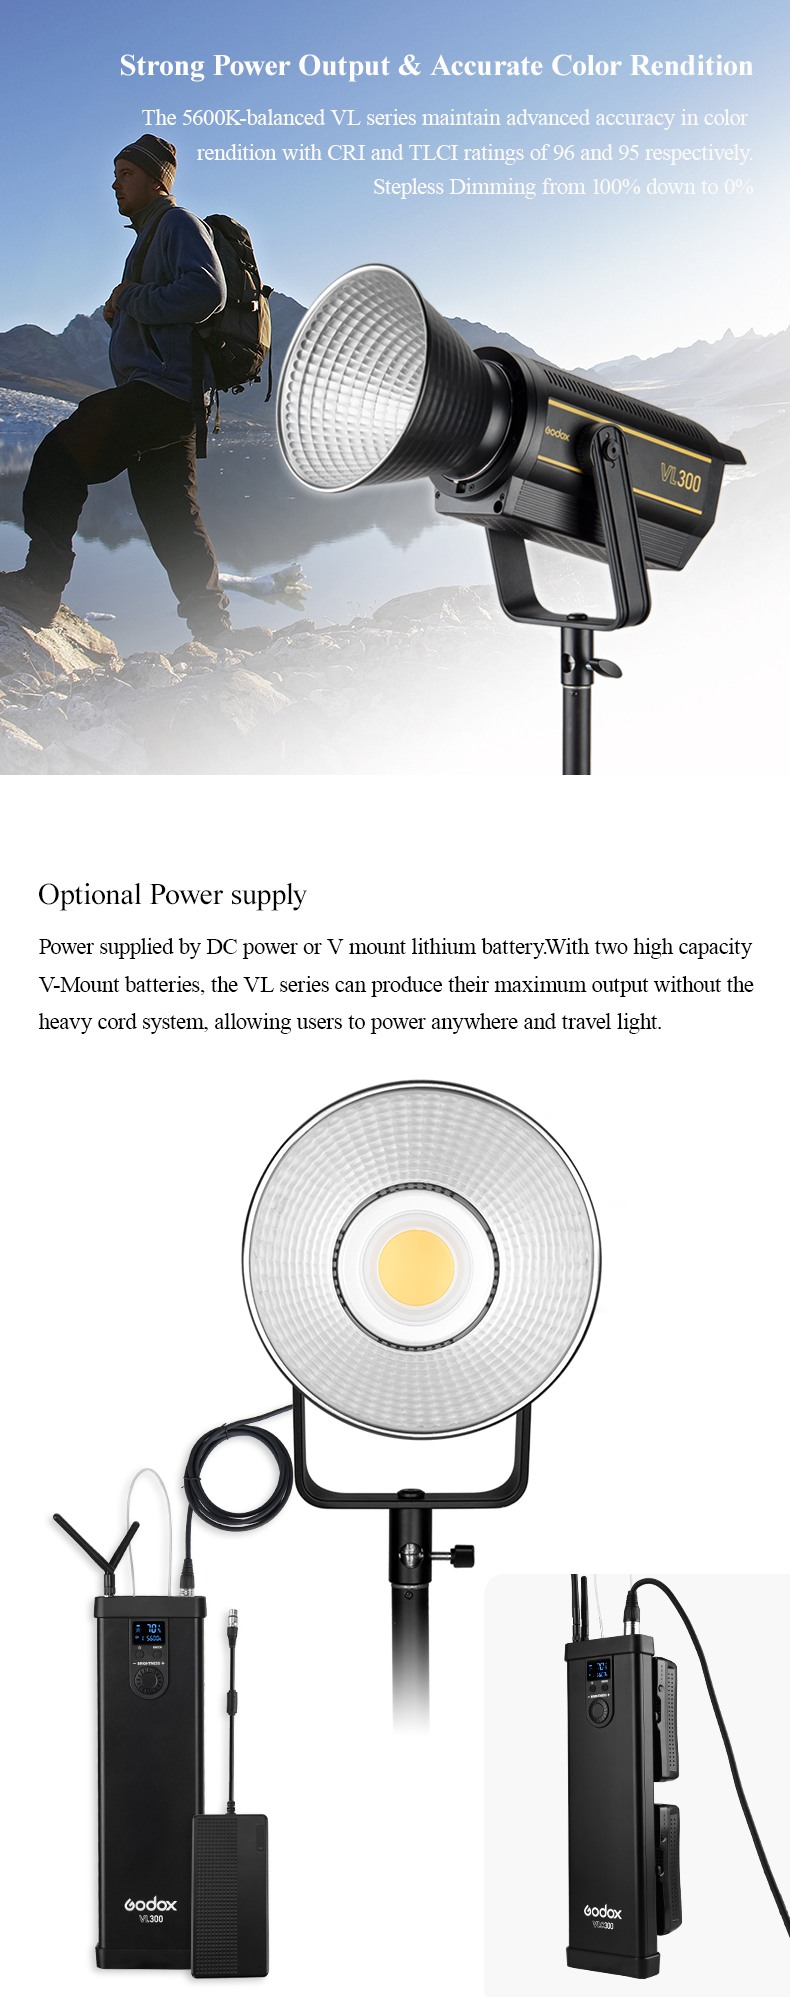 Godox VL series Strong Power Output and Accurate Color Rendering. Optional Power Supply